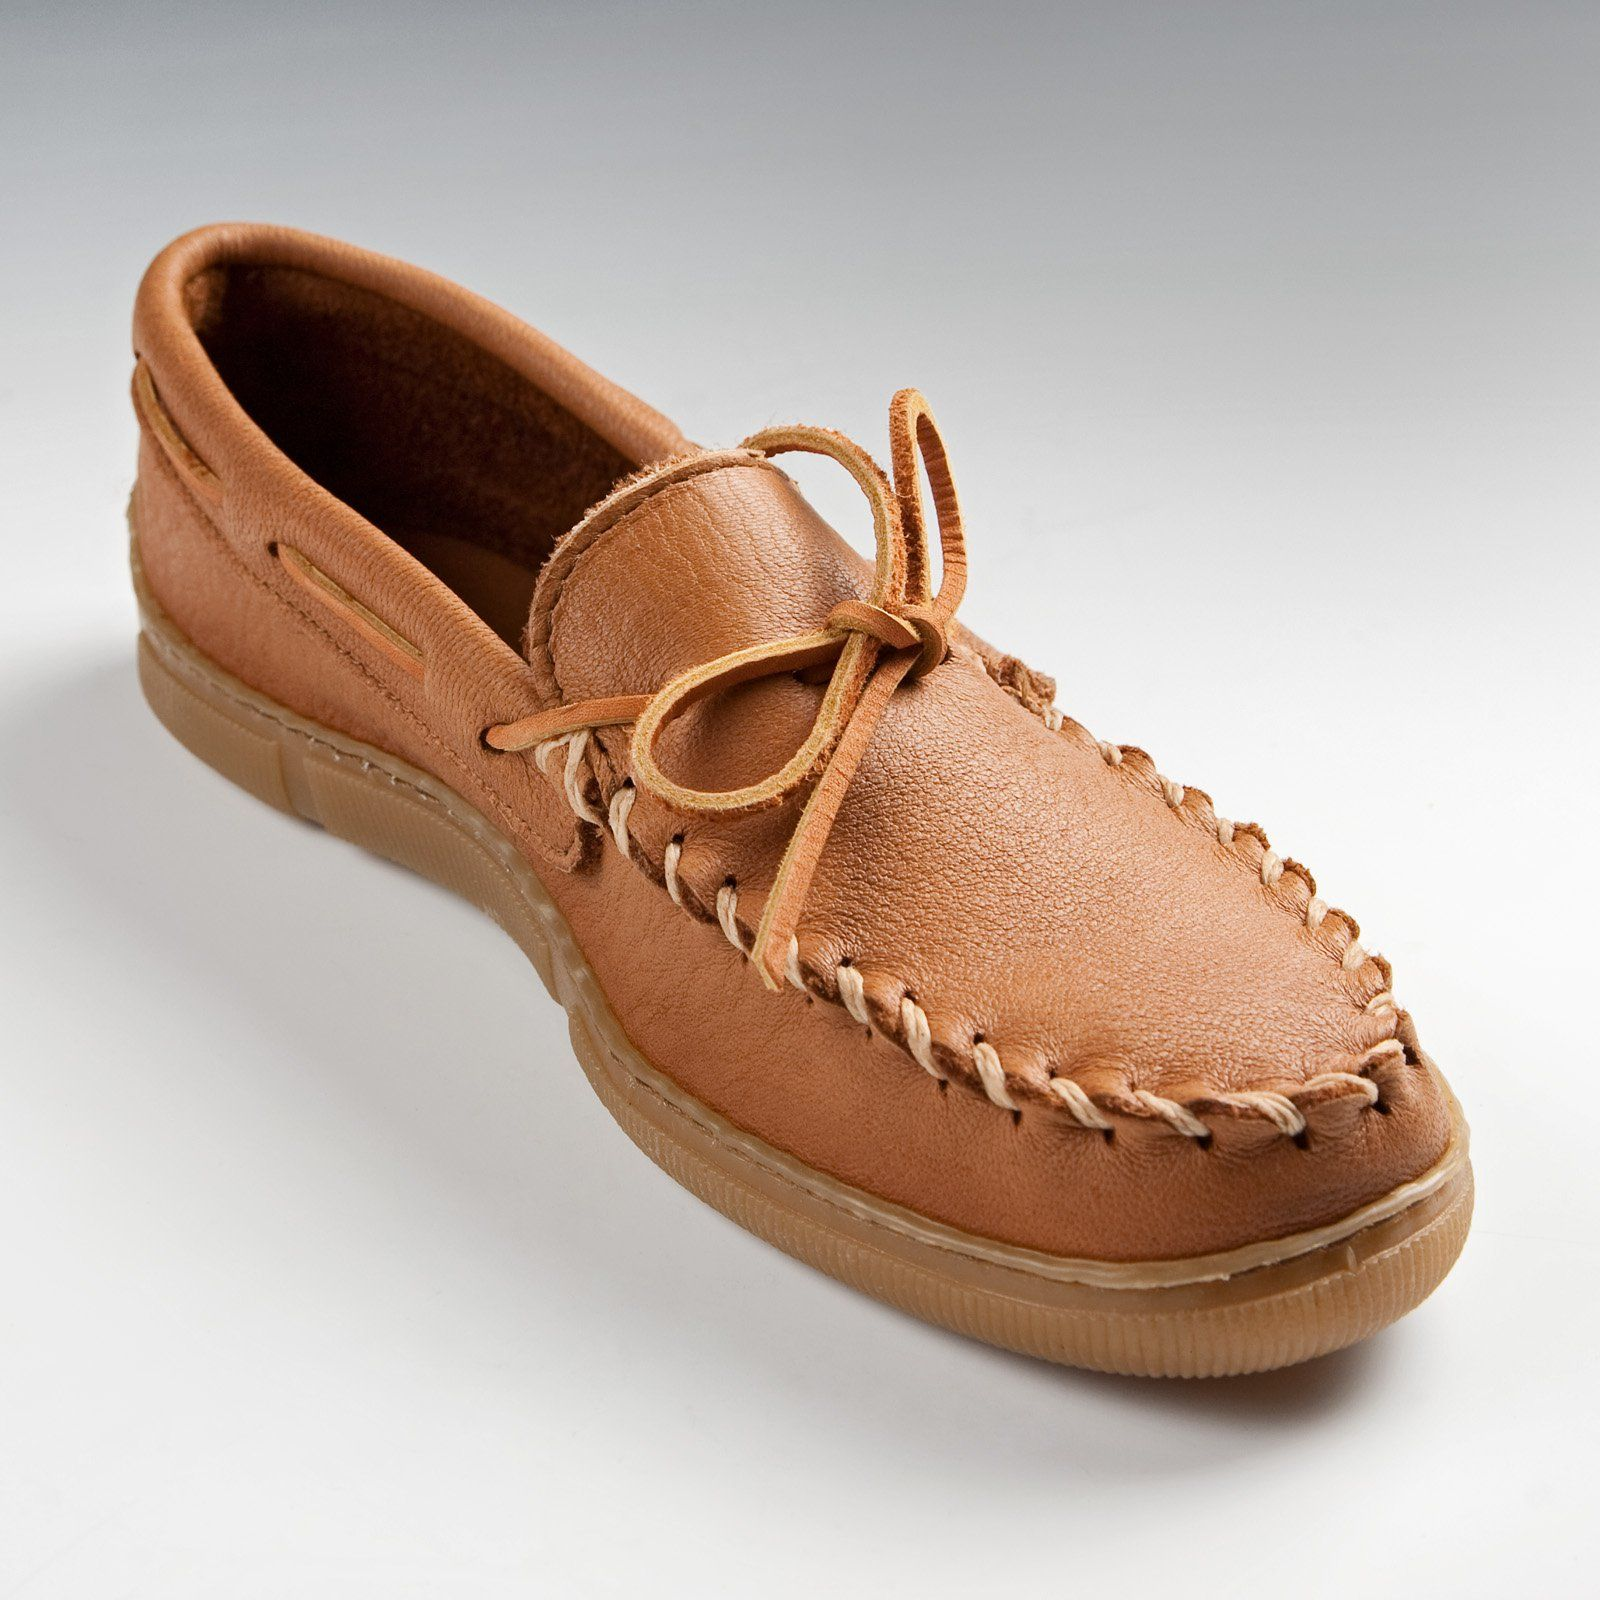 Minnetonka Mens Moosehide Classic Moccasins - 890-NATURAL-7